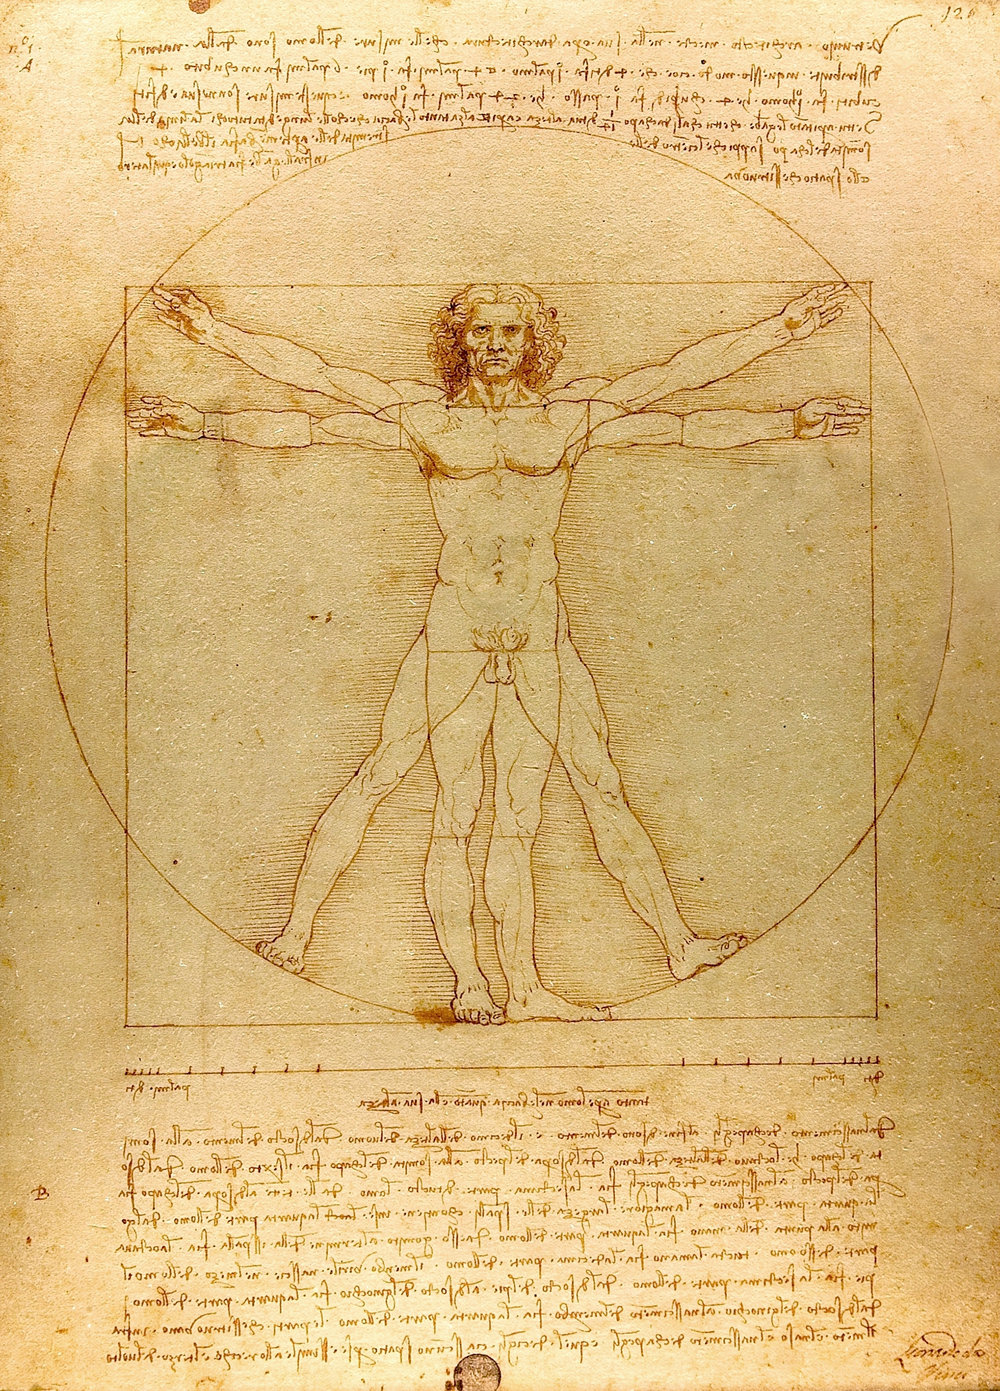 Figure 1.  Leonardo da Vinci,  The Vitruvian Man  (1490).